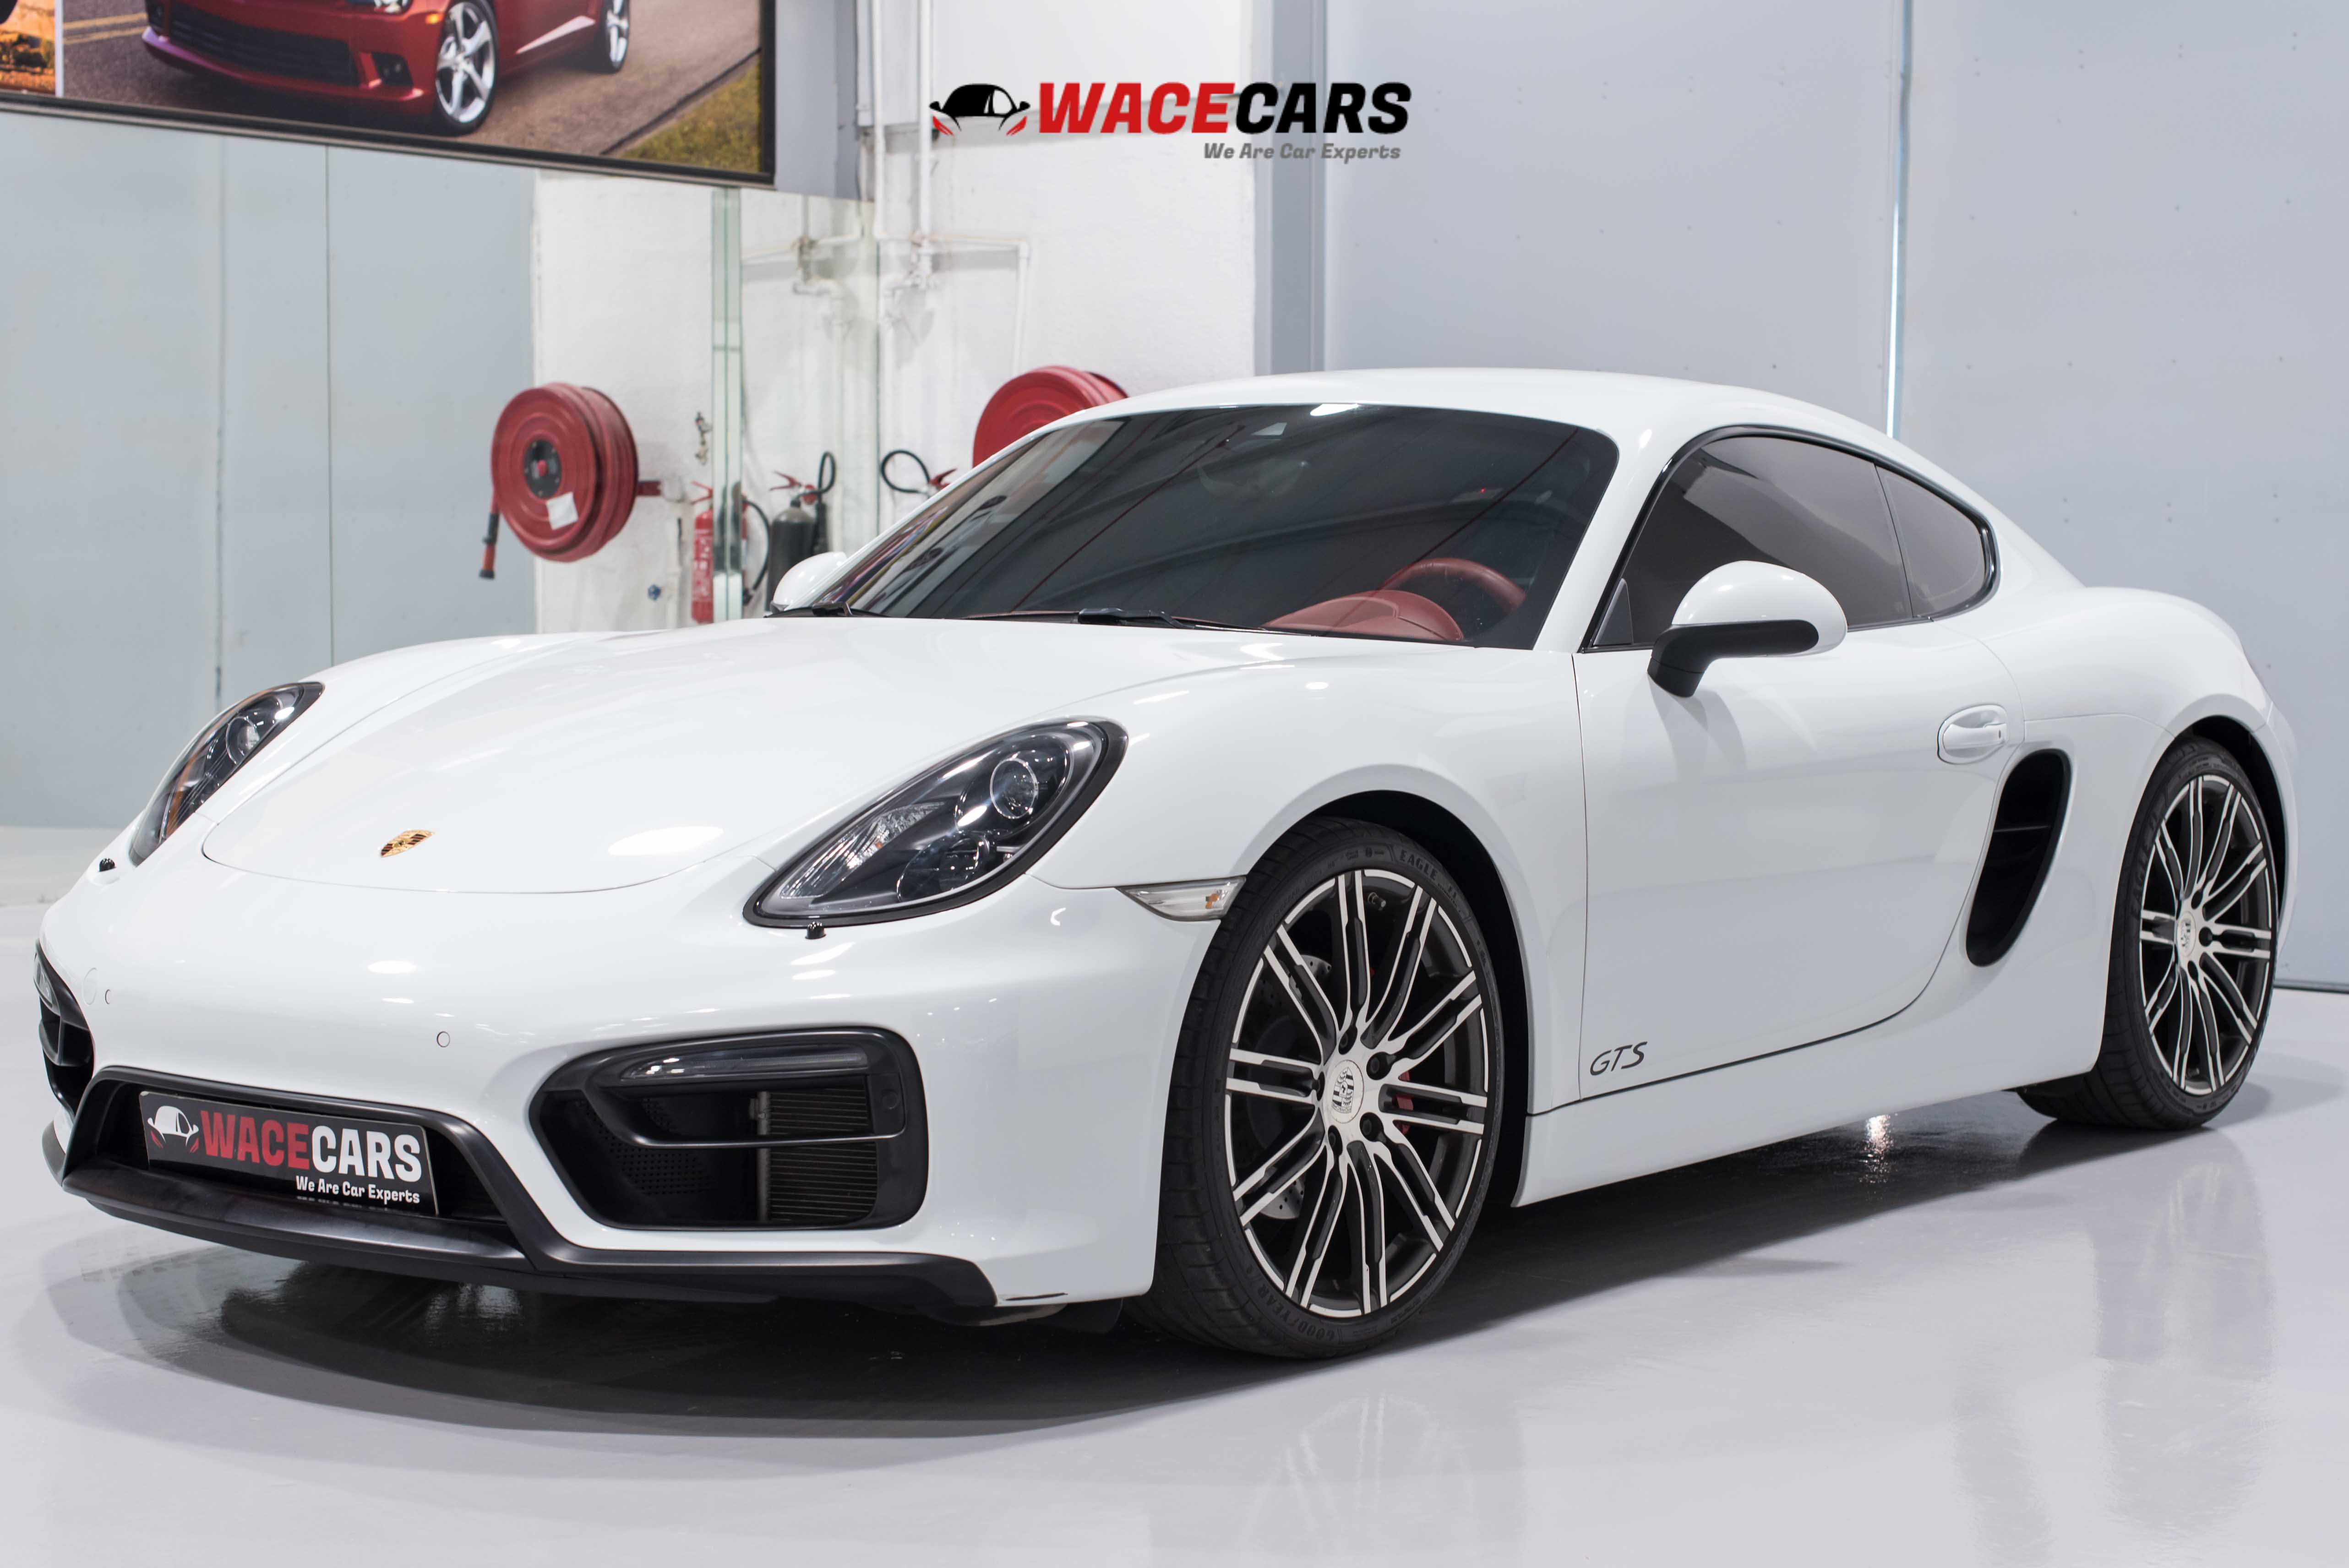 Used Porsche Cayman 2016 for sale in Dubai